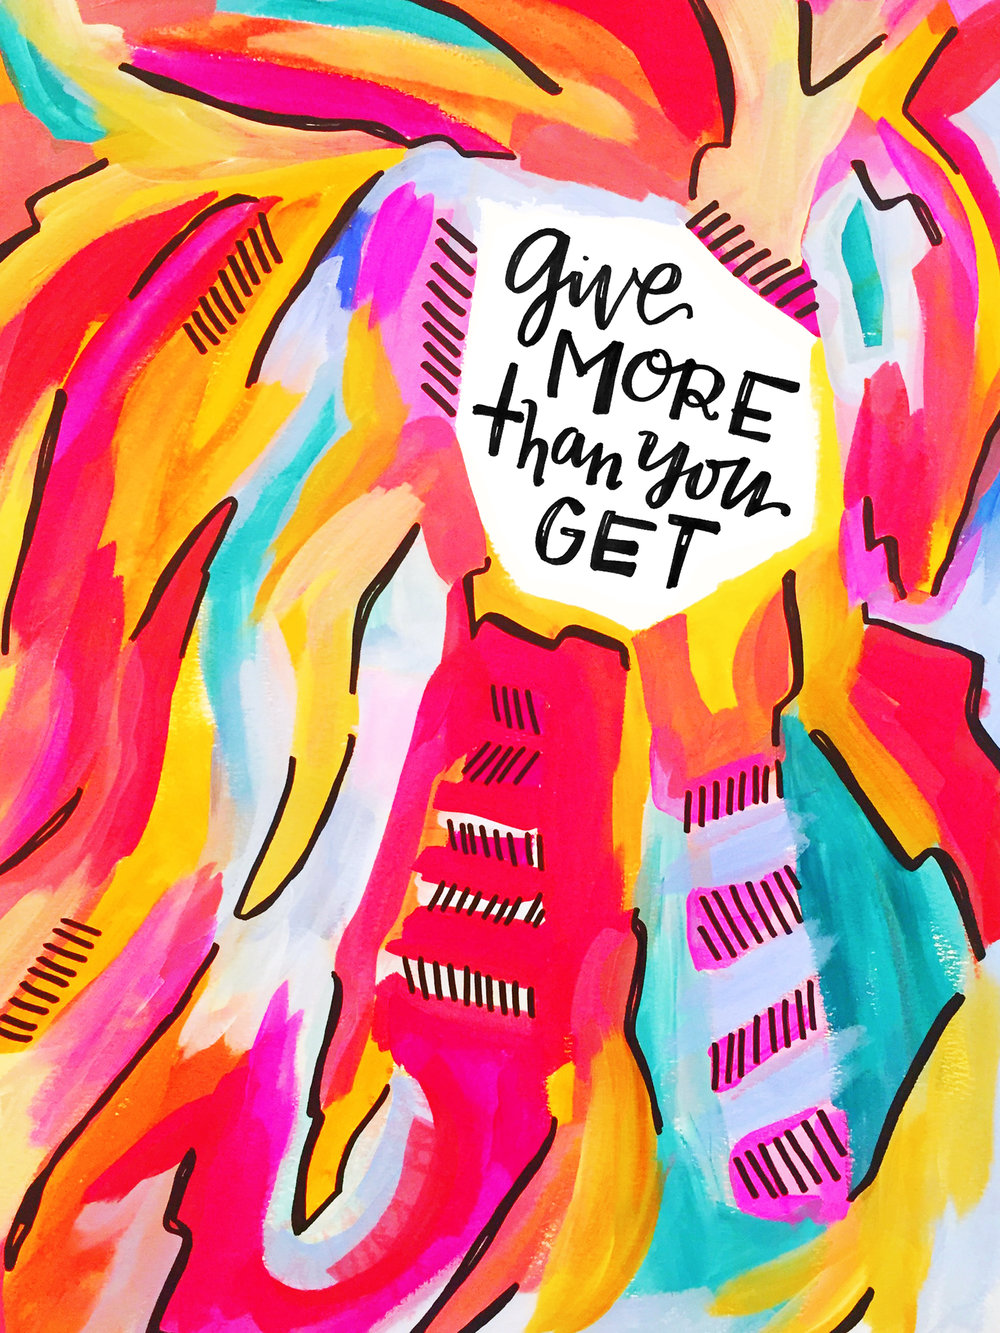 1/25/16: Give